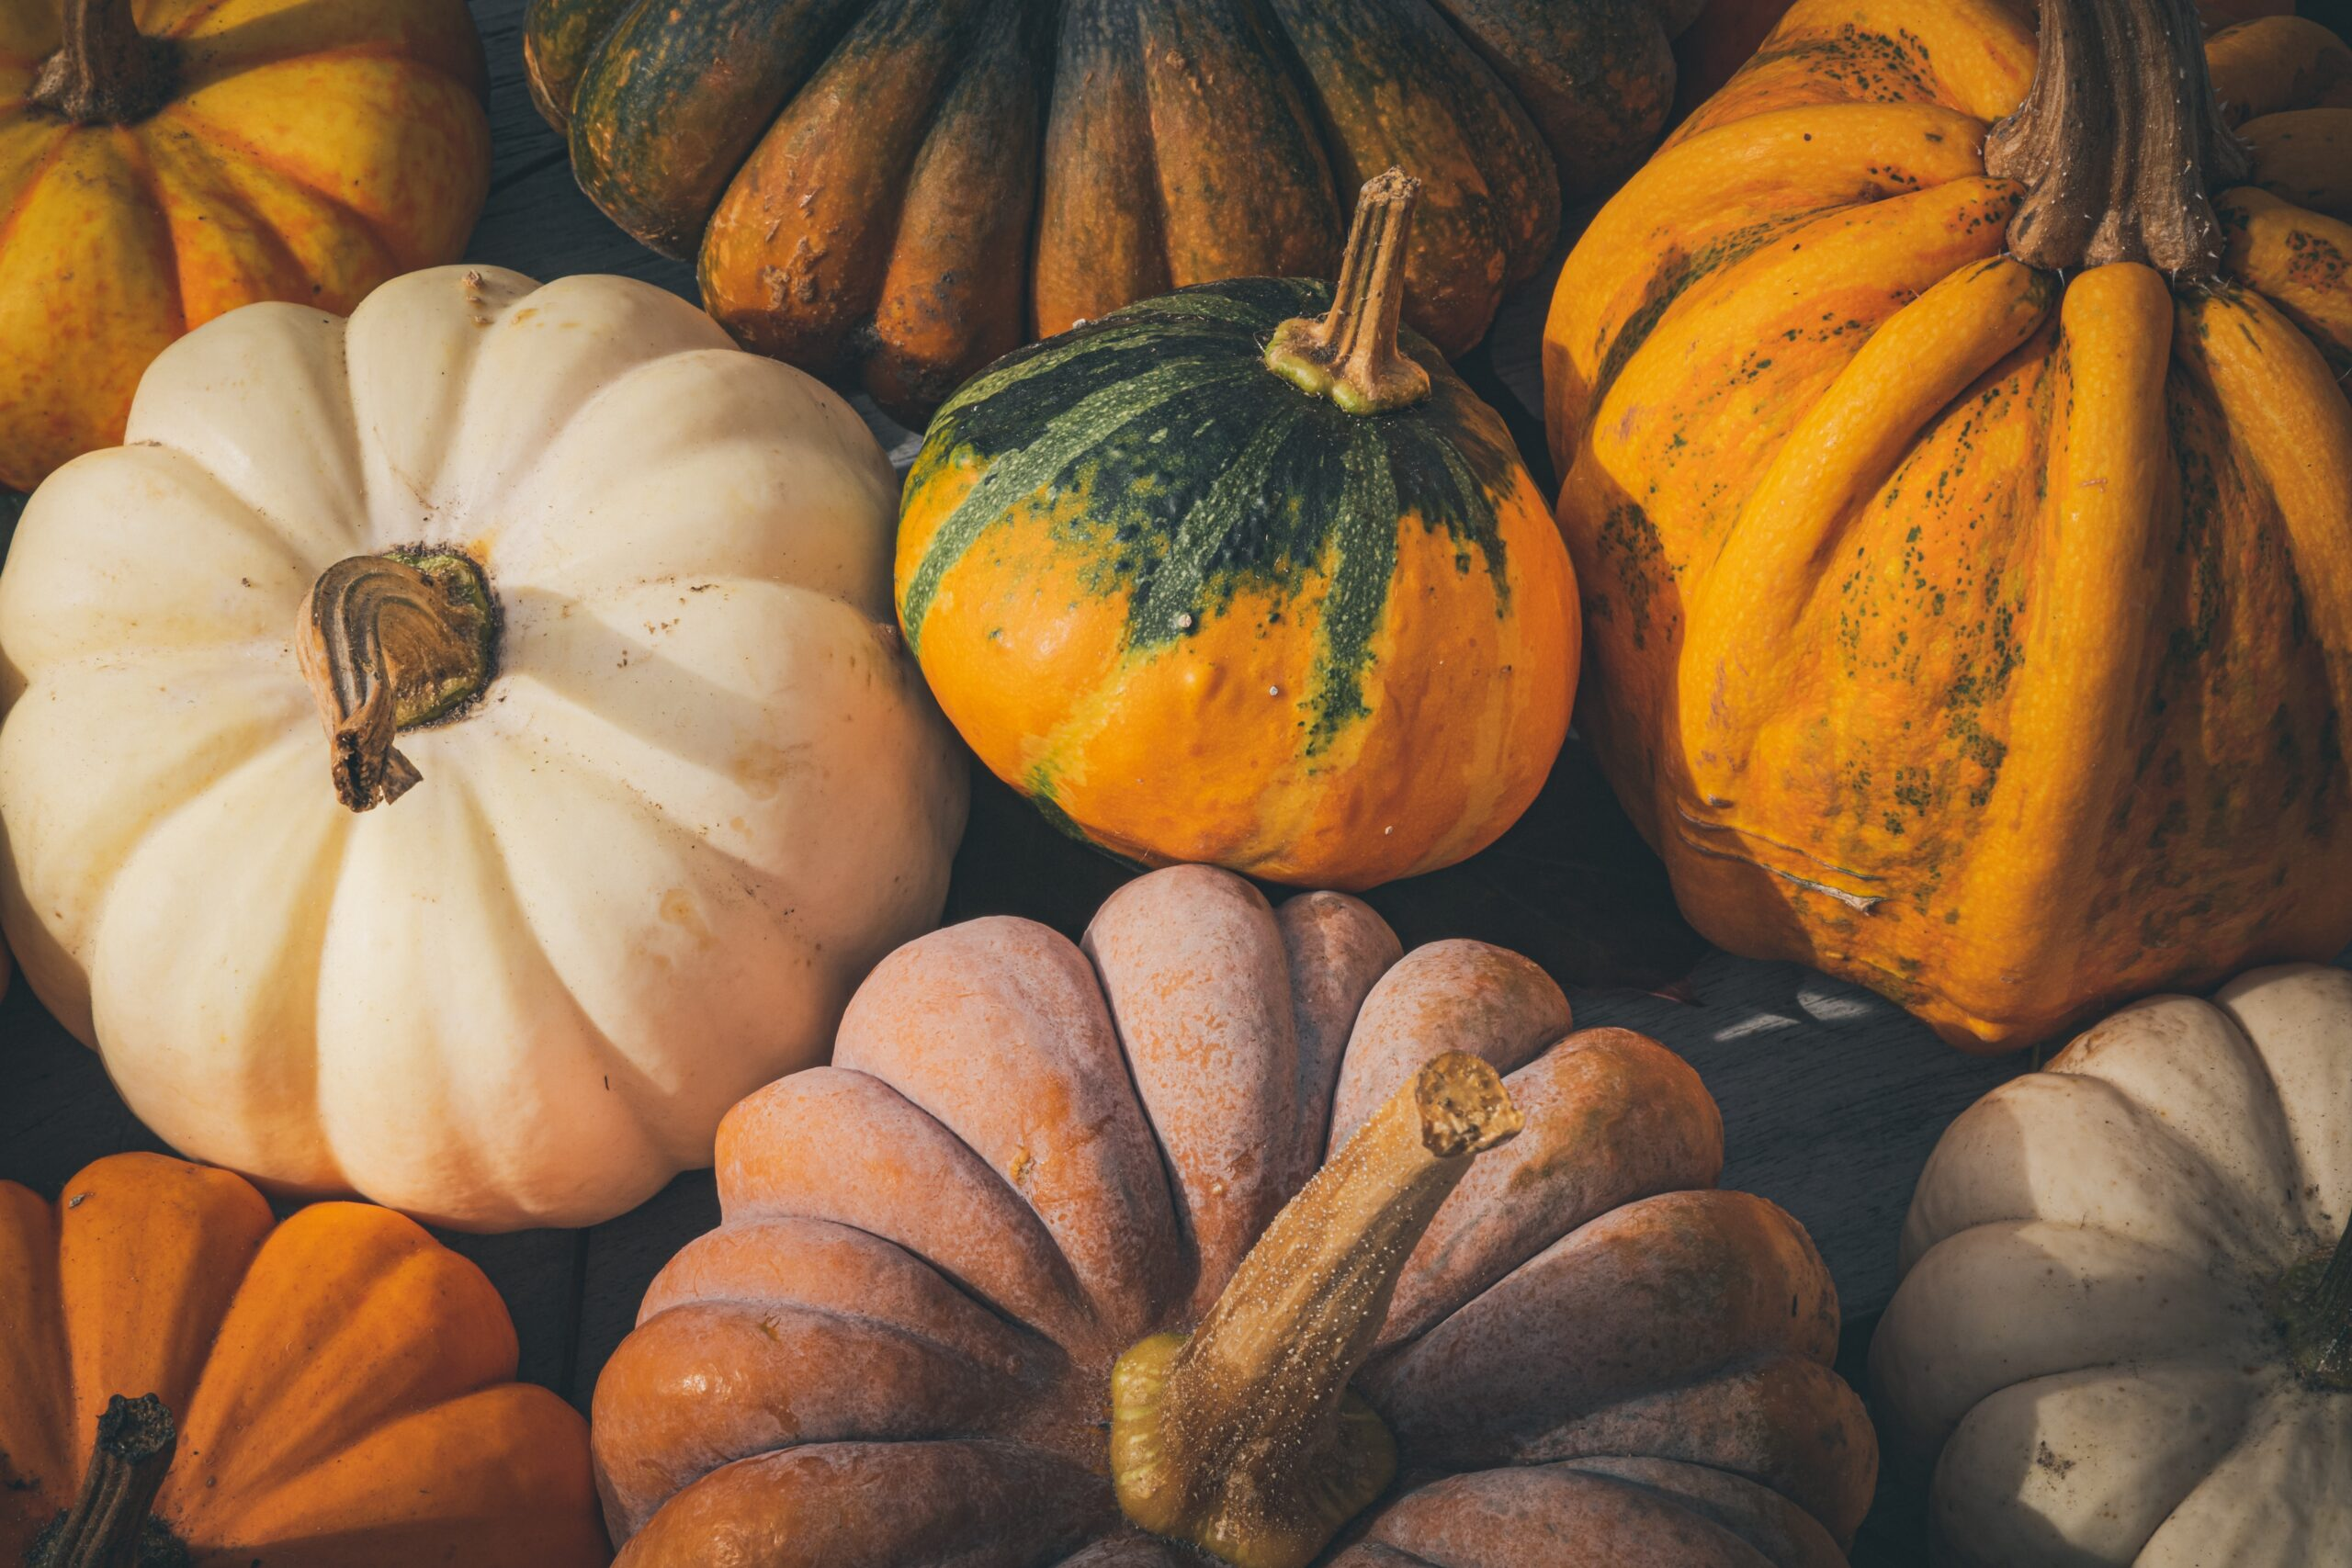 How Pumpkin Can Treat Your Dog's Bowel Issues